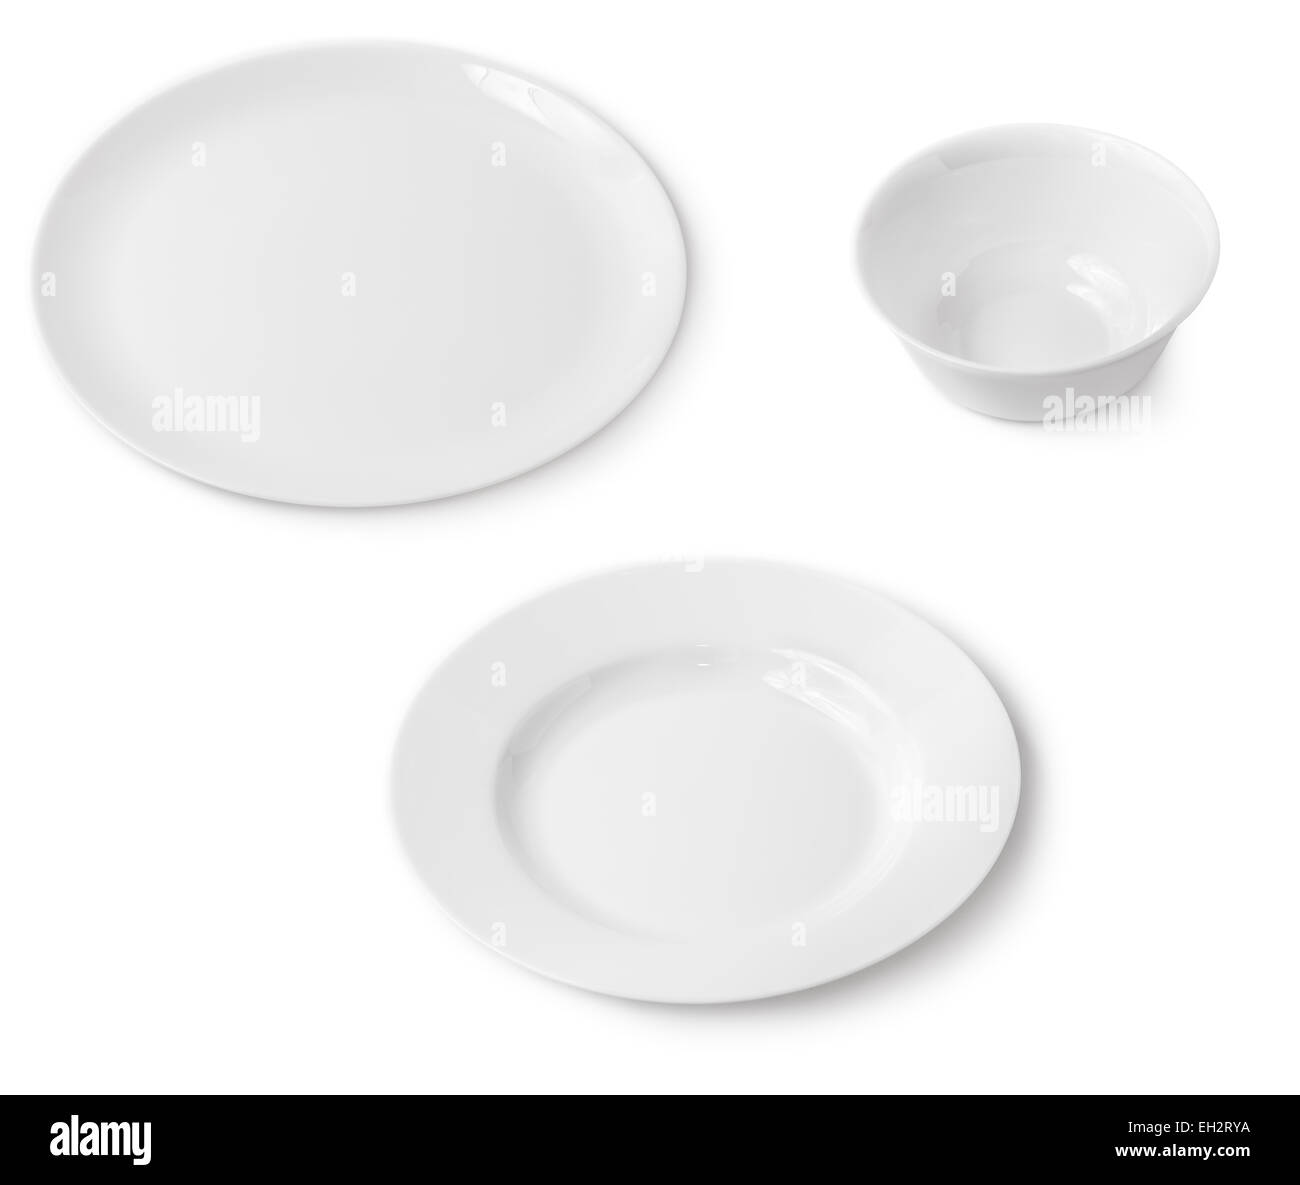 Clean white plates and bowl. Isolated on white background. - Stock Image